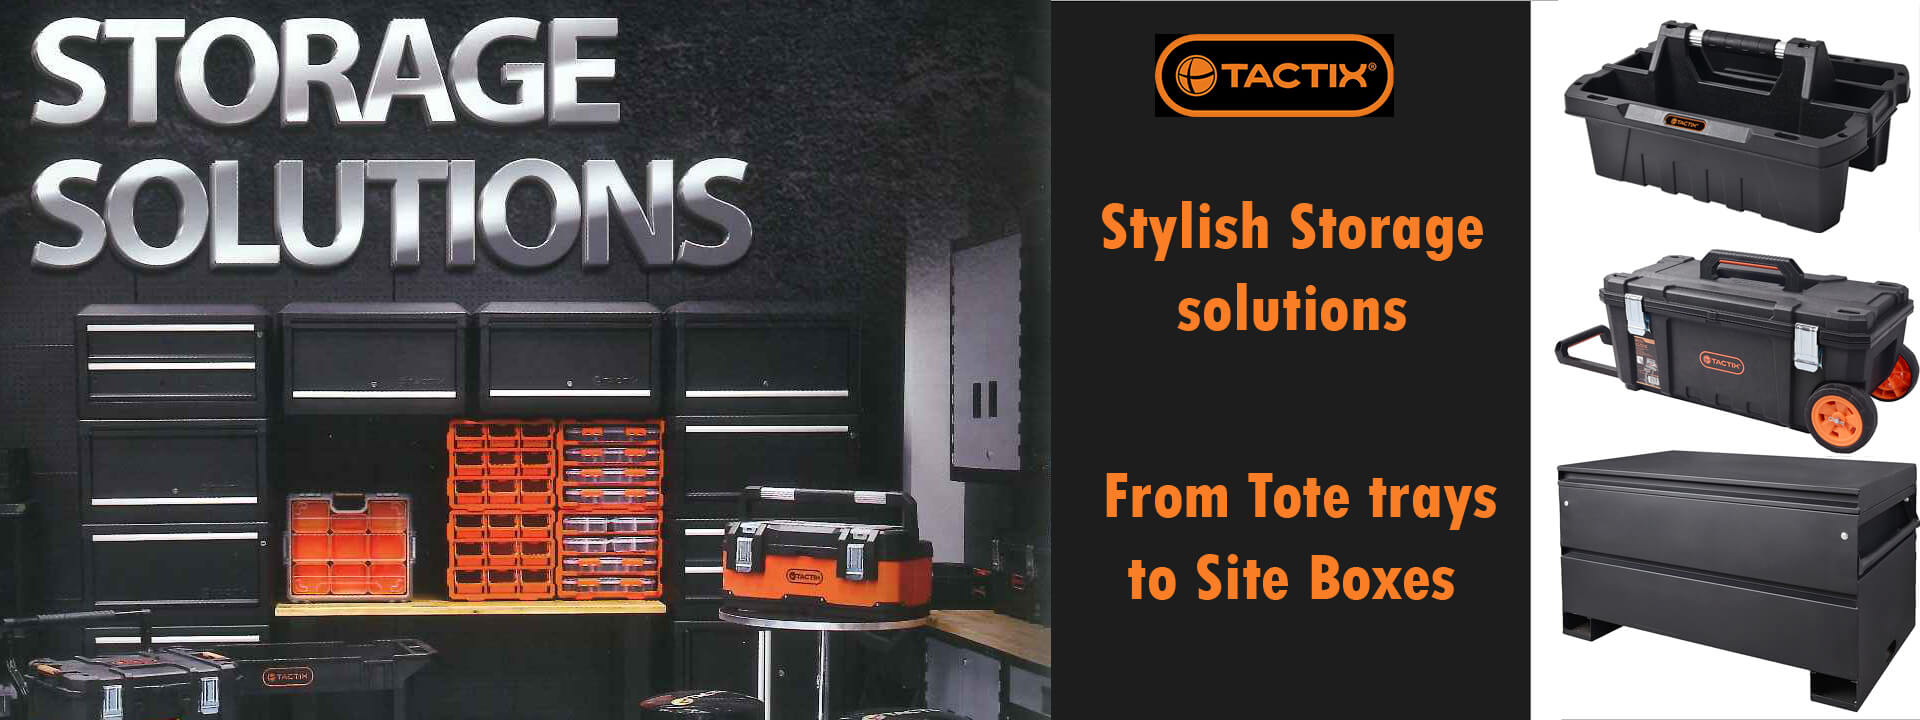 Tactix Tools - Tool Storage for all